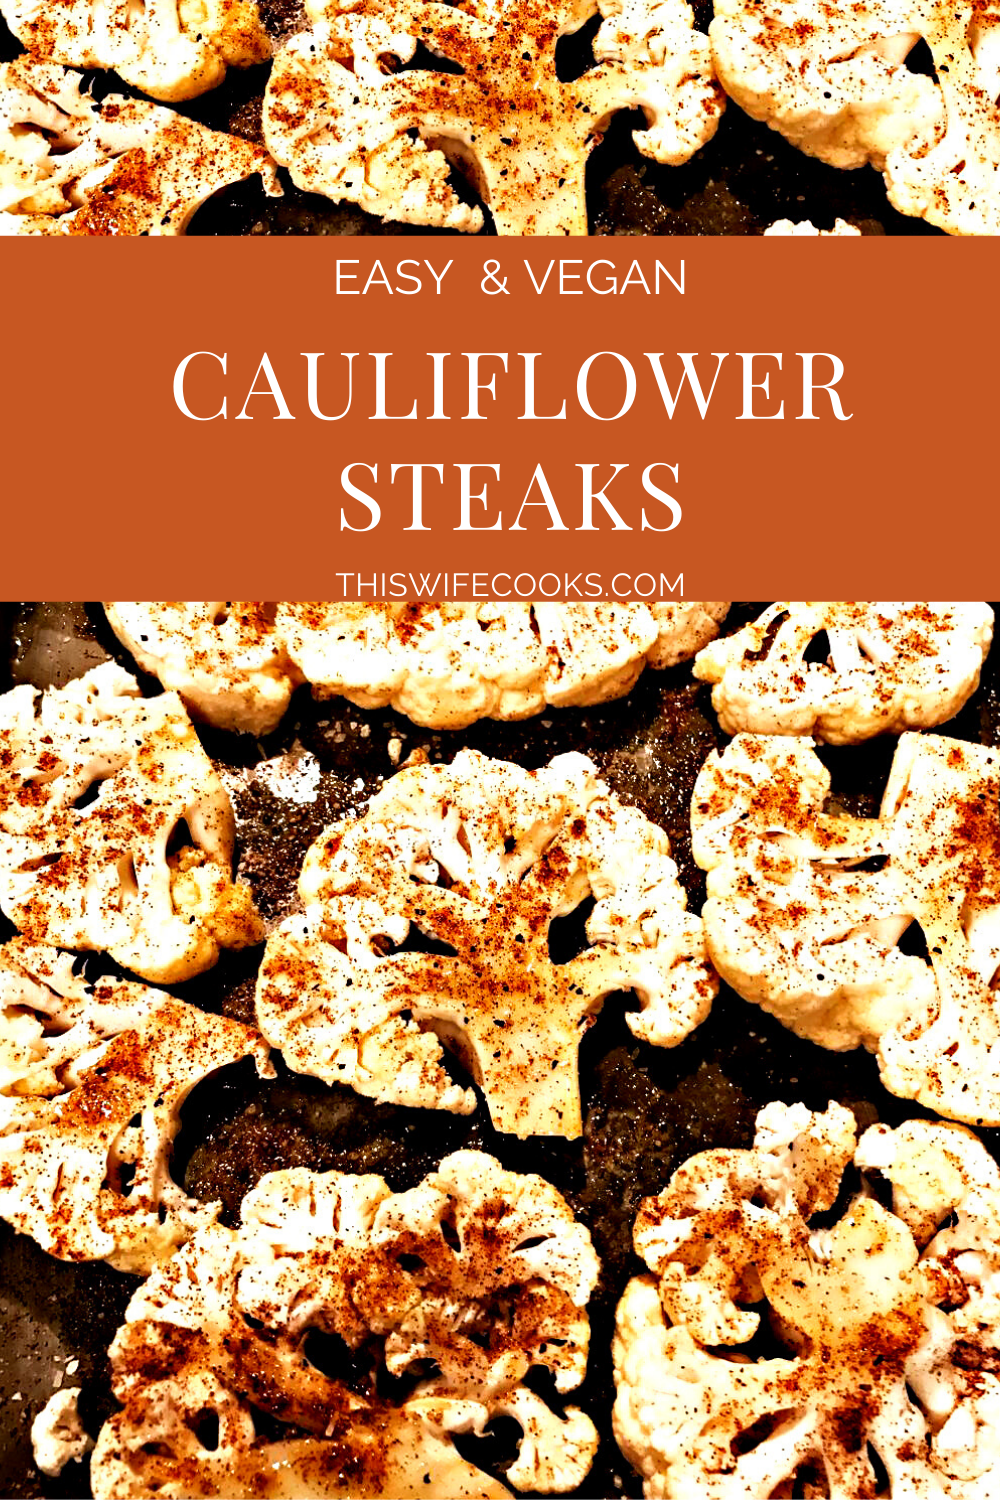 Easy Cauliflower Steaks - Ready to serve in 30 minutes or less, cauliflower steaks are the perfect go-to weeknight dinner! #cauliflowersteak #easyvegandinnerideas #veganquarantinerecipes #thiswifecooksrecipes #plantbaseddinner #30minutedinner #roastedcauliflower via @thiswifecooks